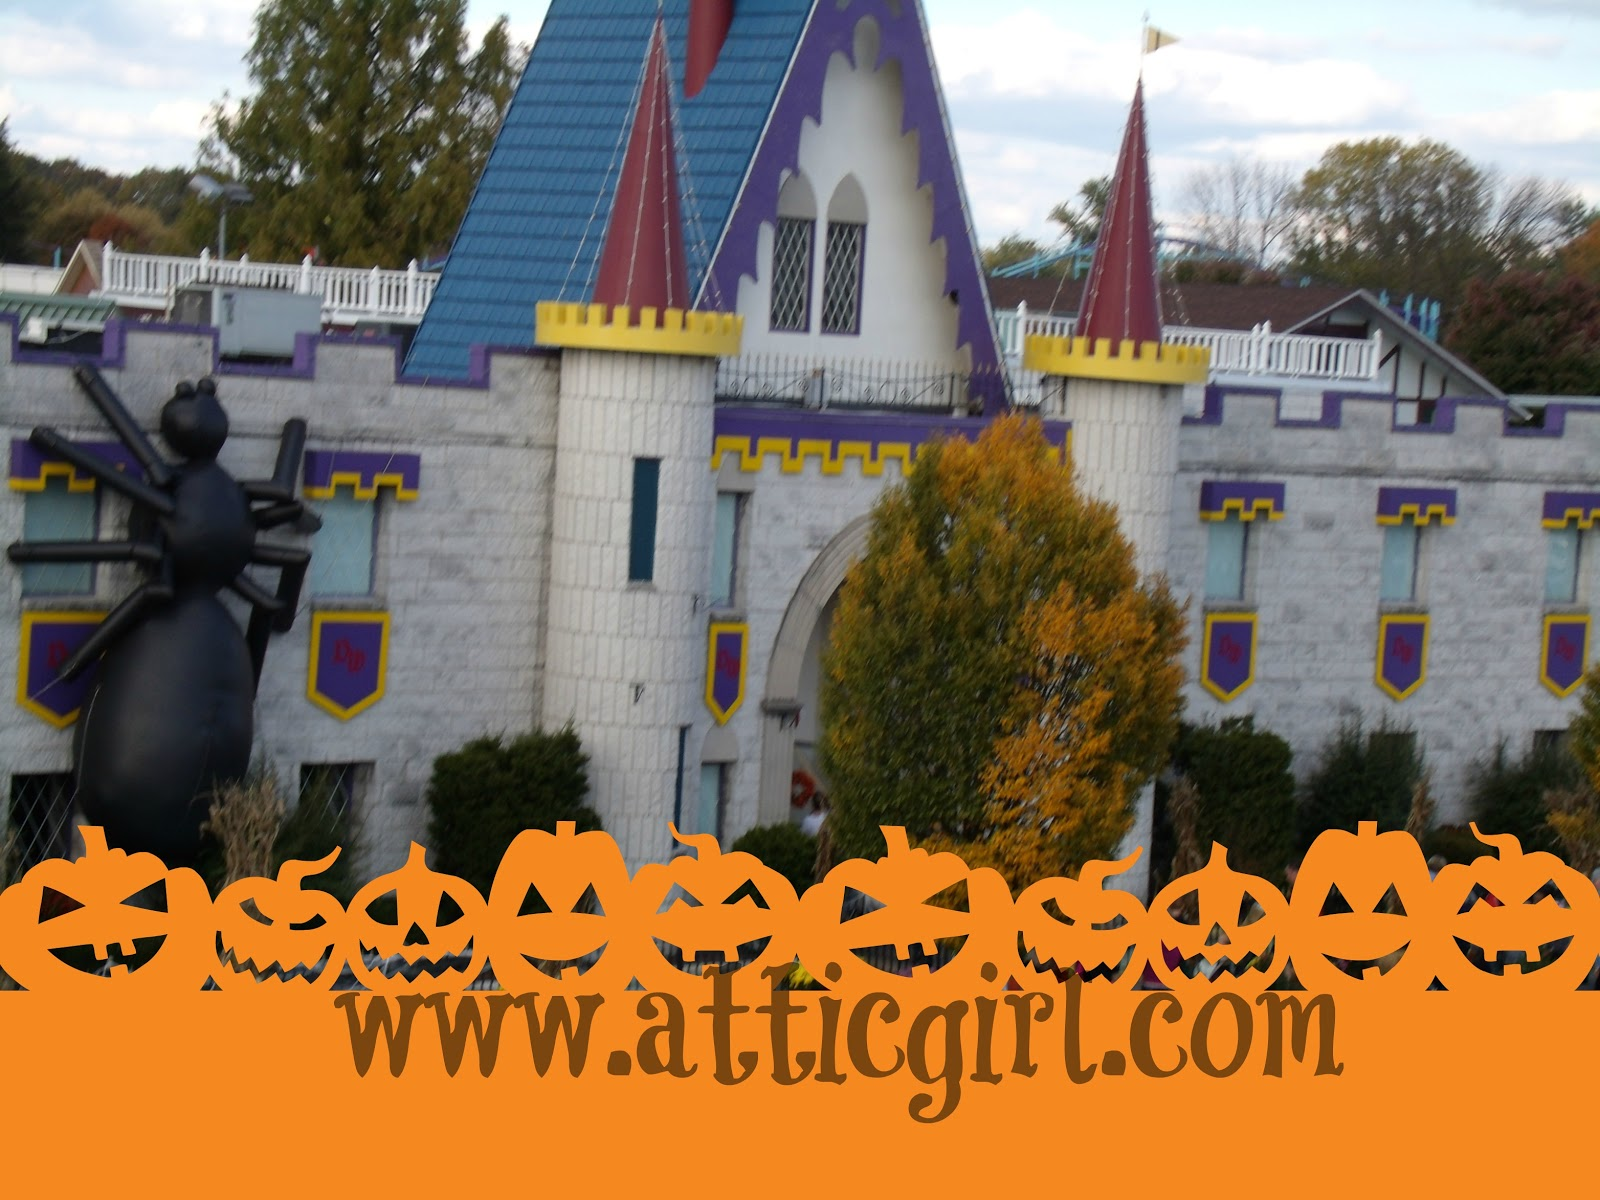 Dutch Wonderland, amusement parks